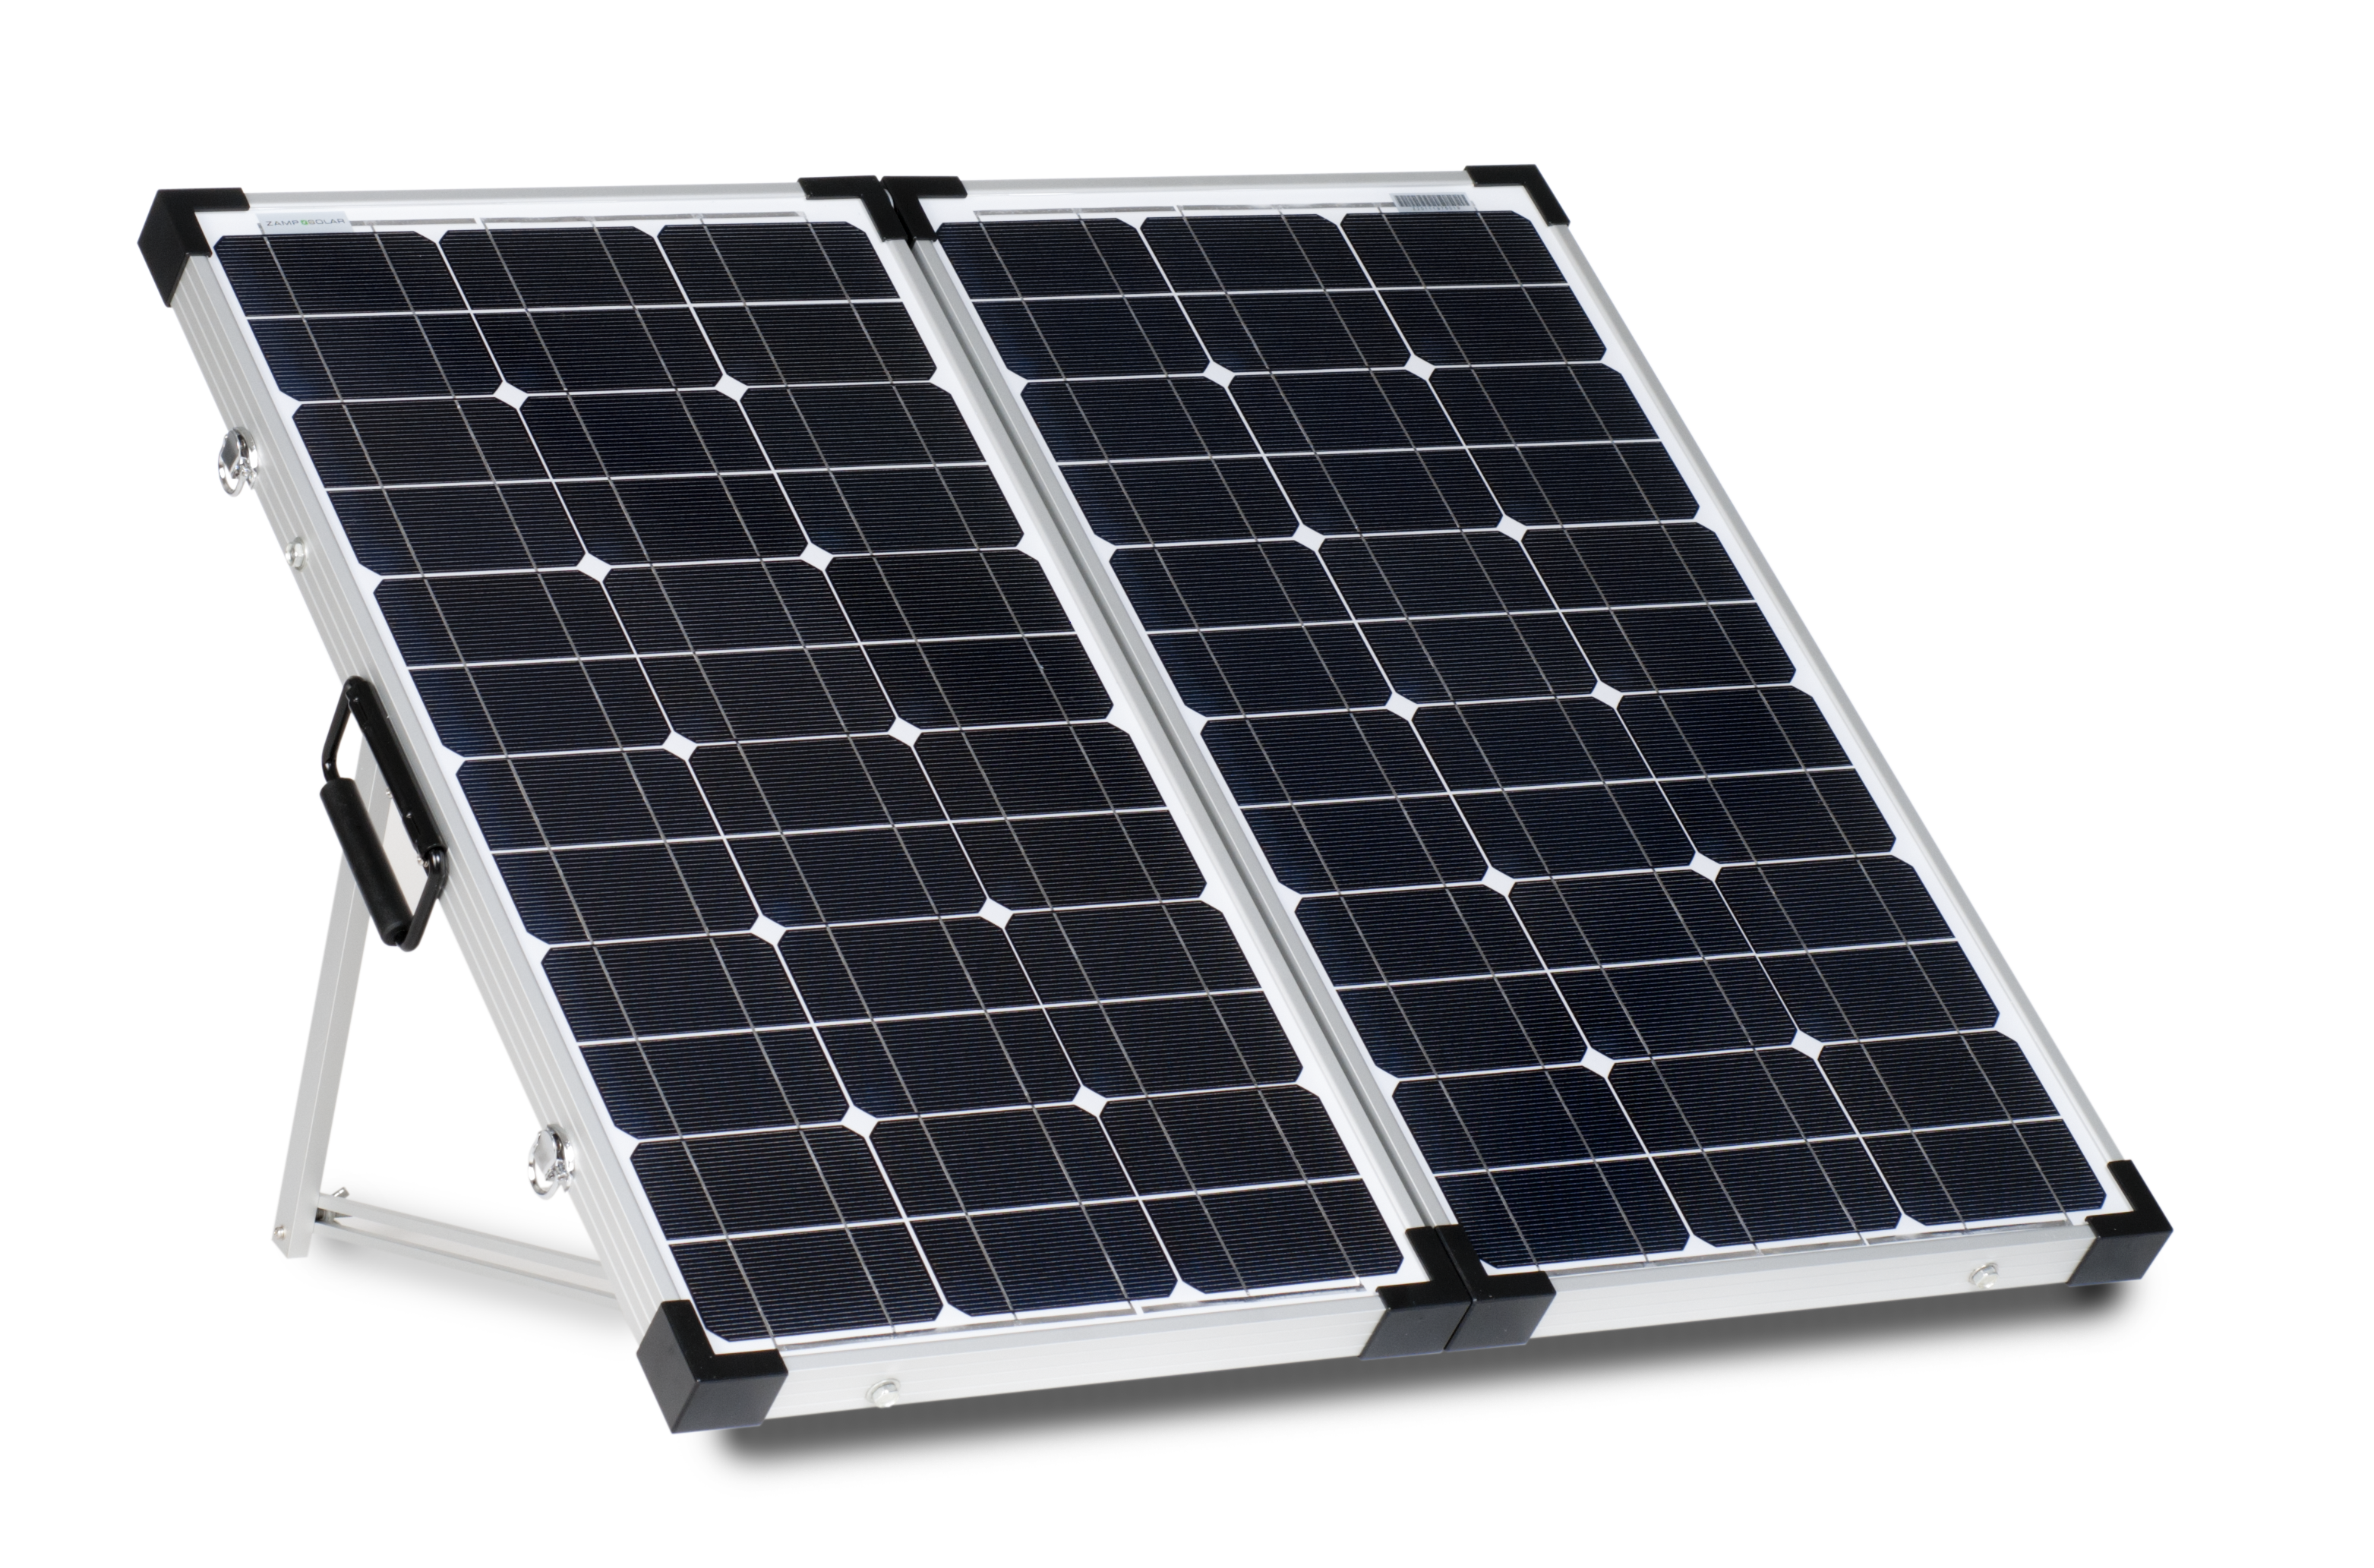 How does portable solar power